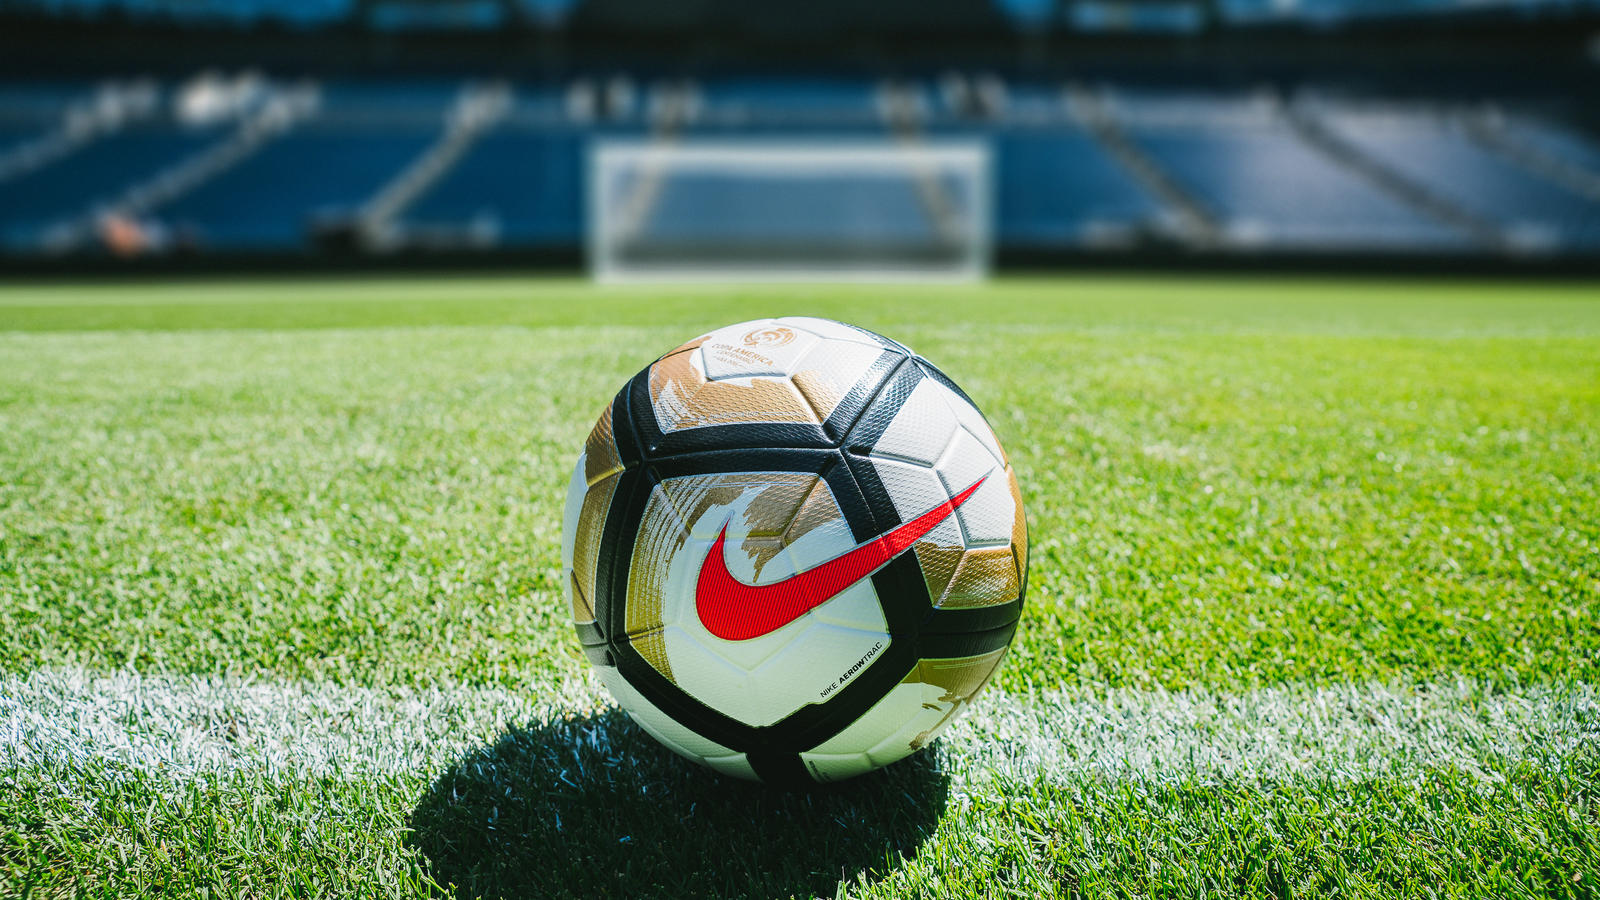 Nike News - Introducing the Official Match Ball of the Copa ...